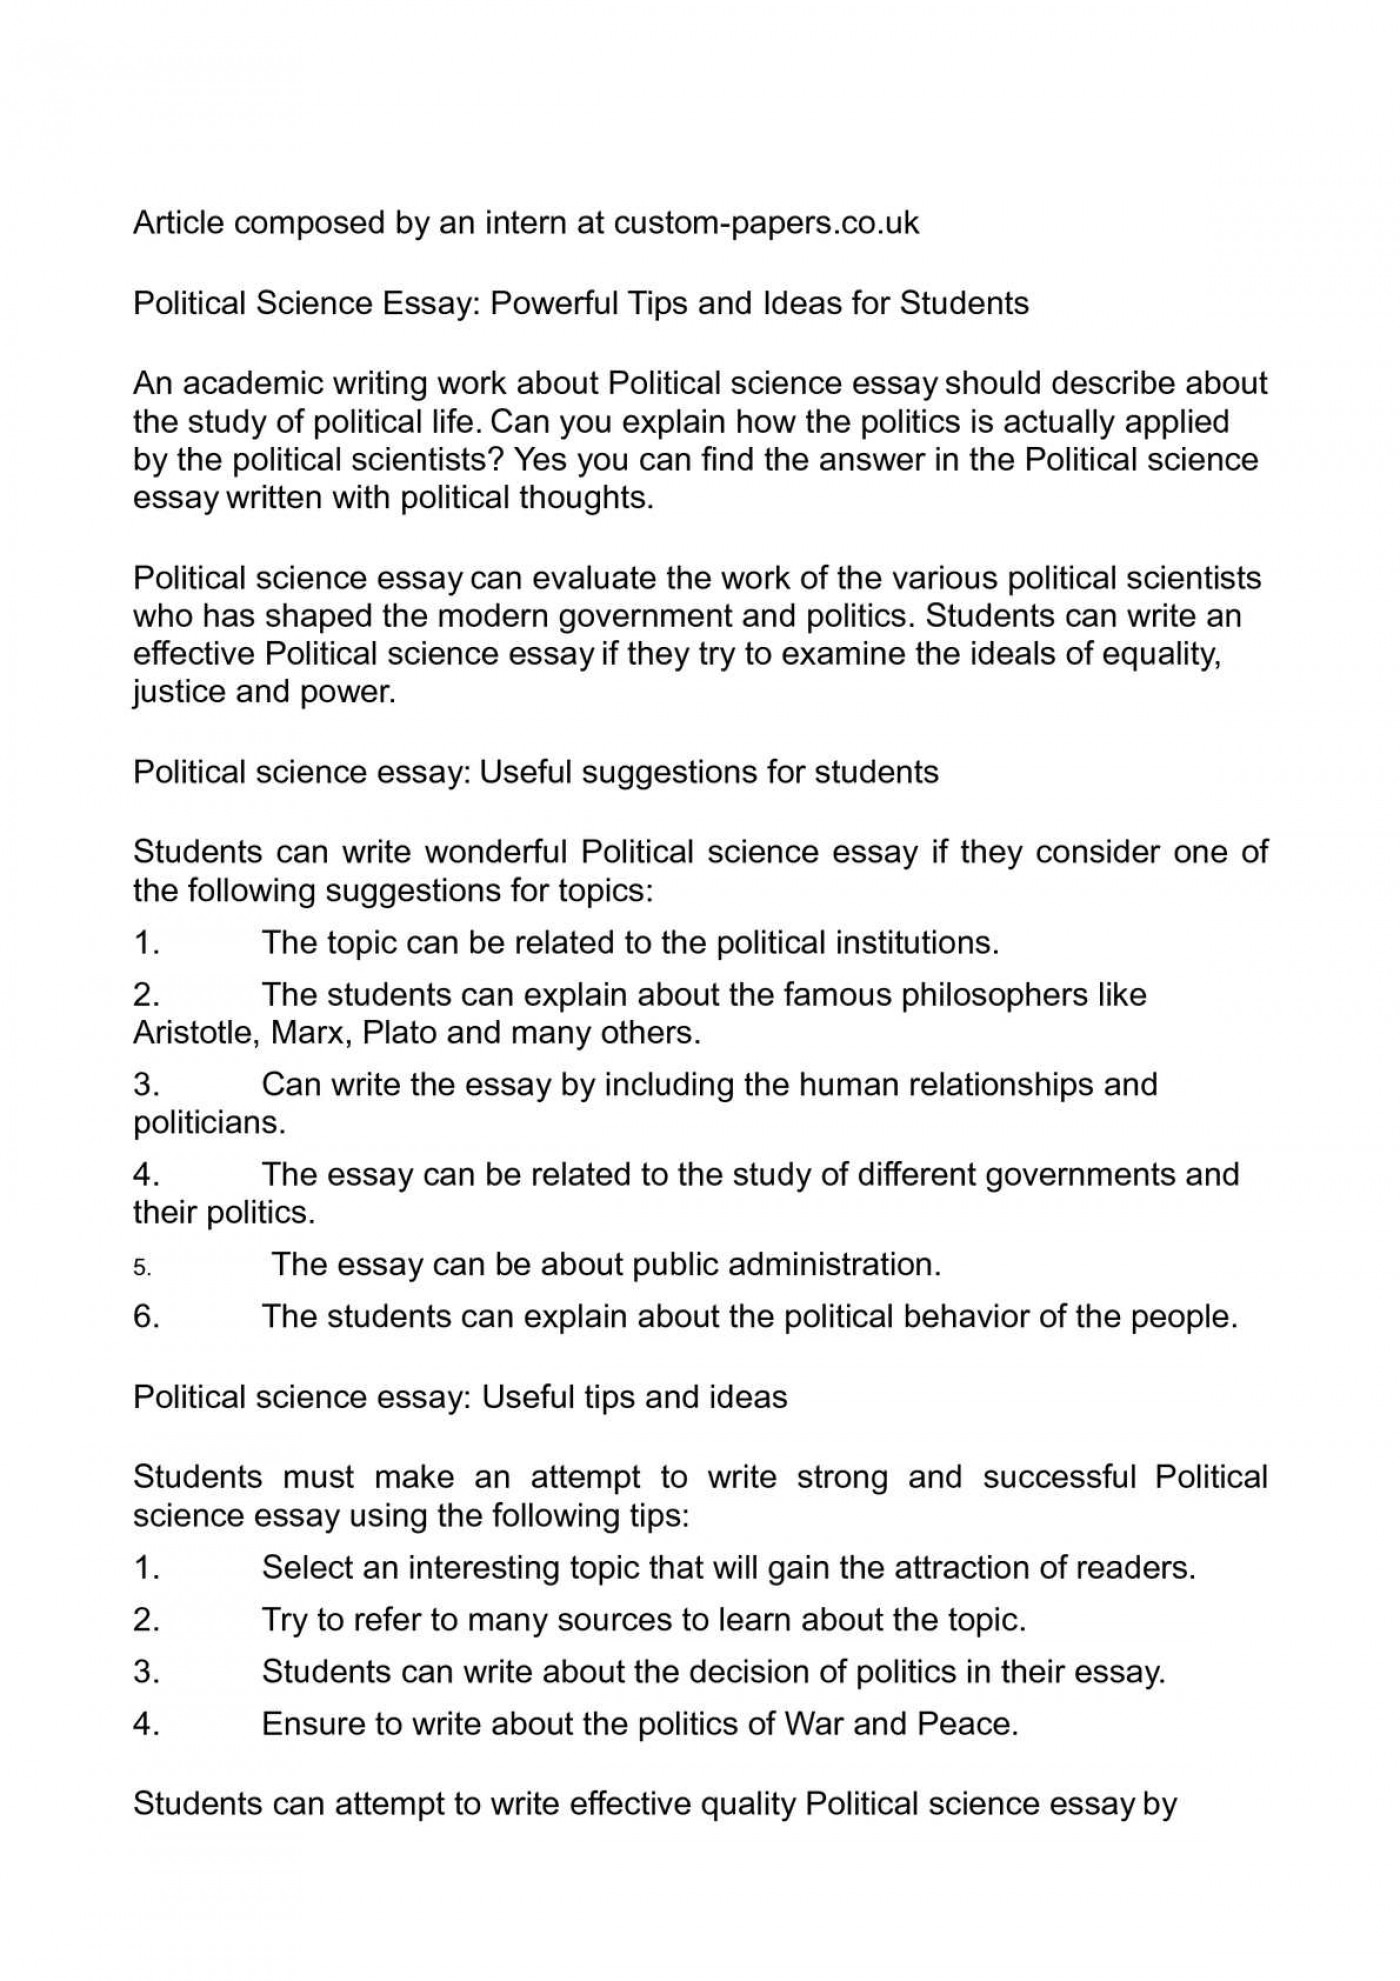 023 Research Paper P1 Political Science Essay Archaicawful Topics 2014 101 1400